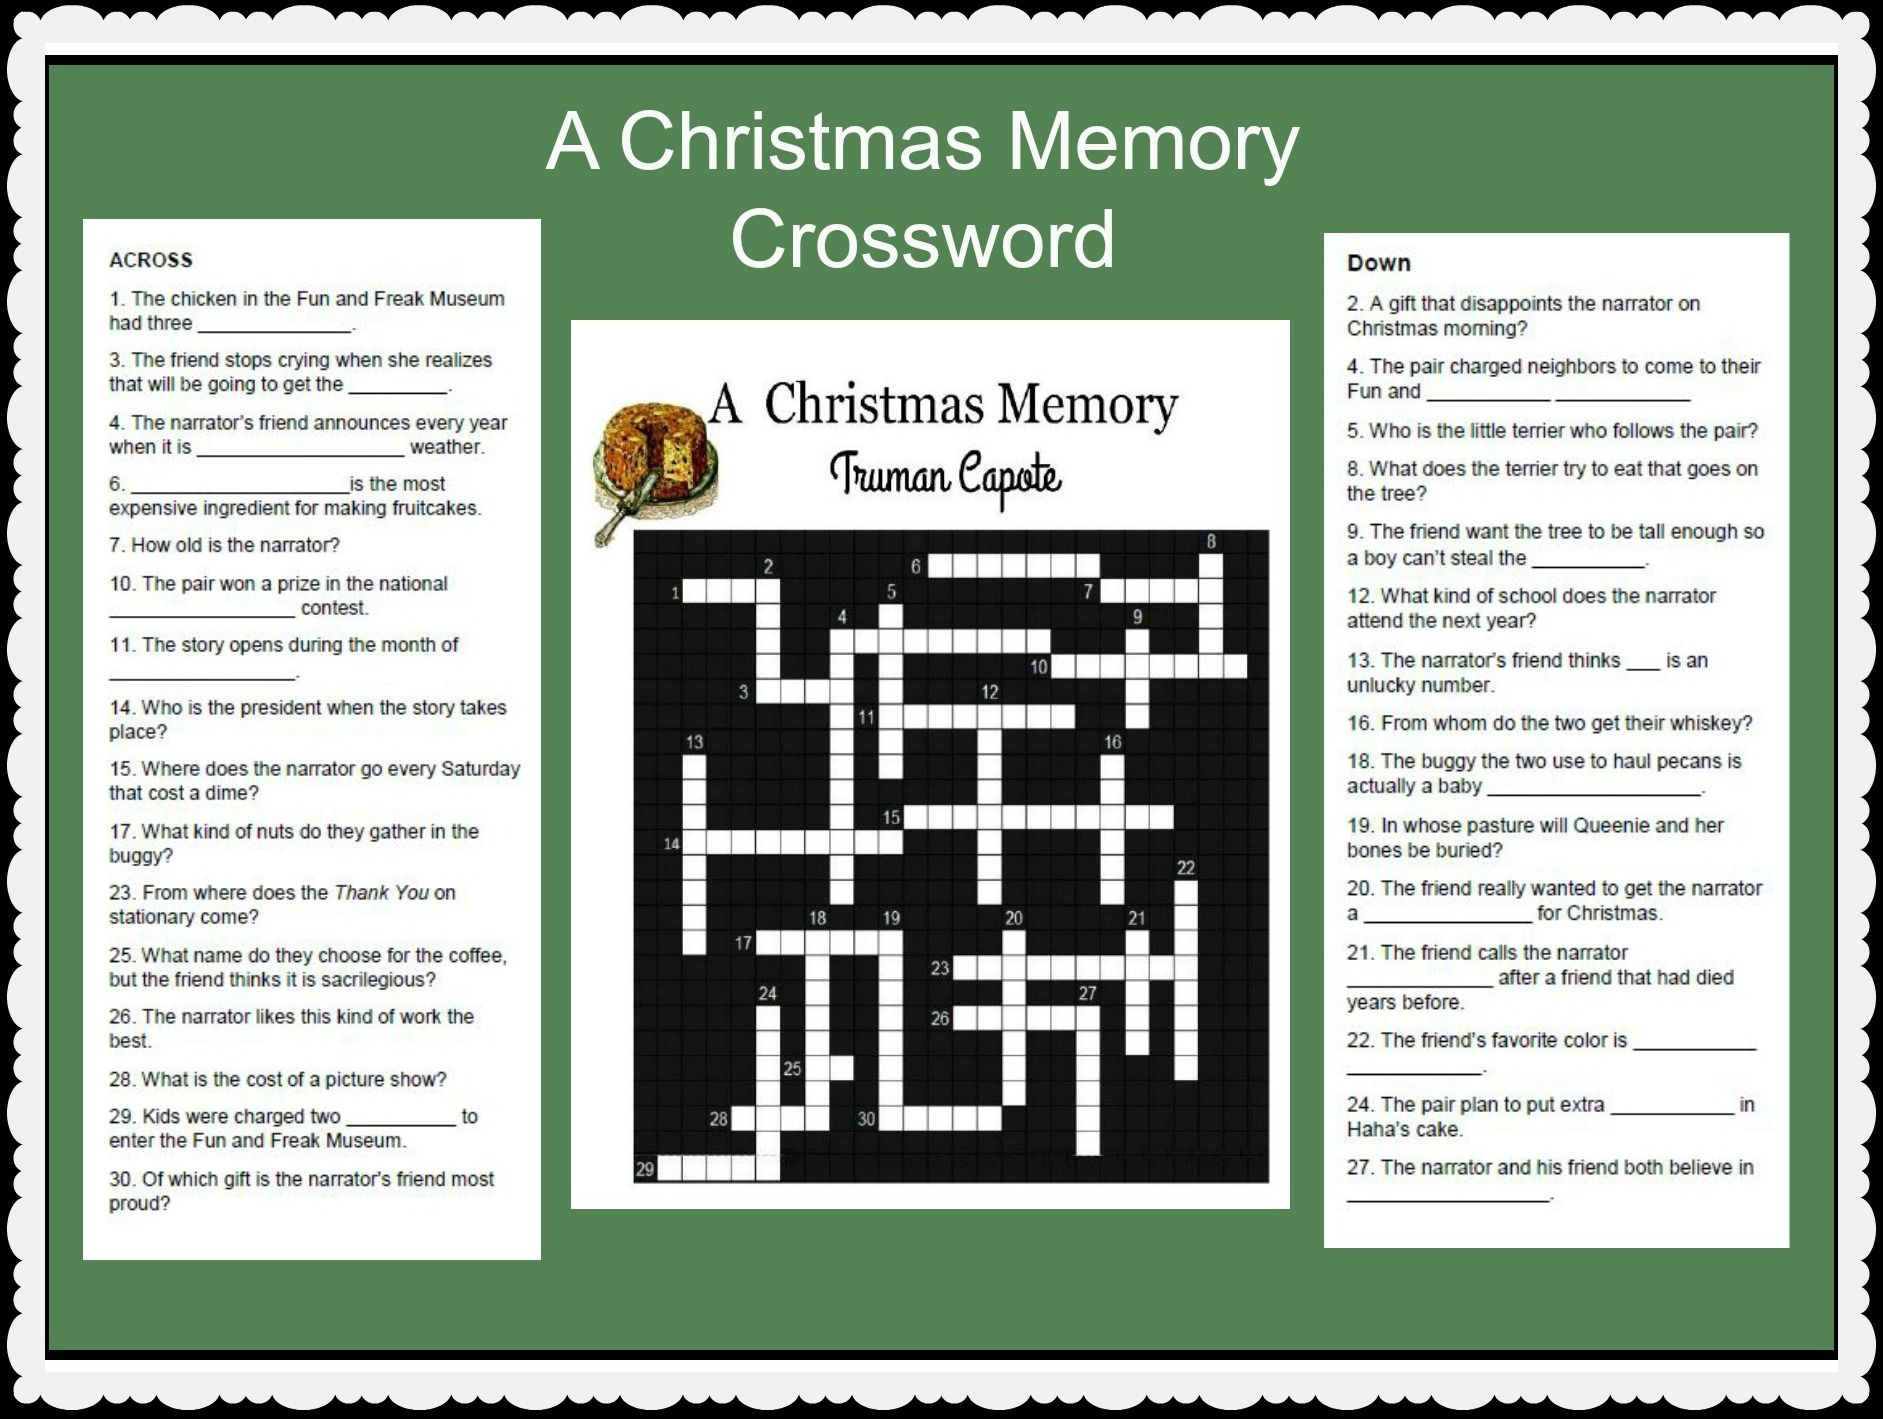 a christmas memory by truman capote a lesson activity to review plot and characters of the beloved short story crossword with answer key - A Christmas Memory Full Text